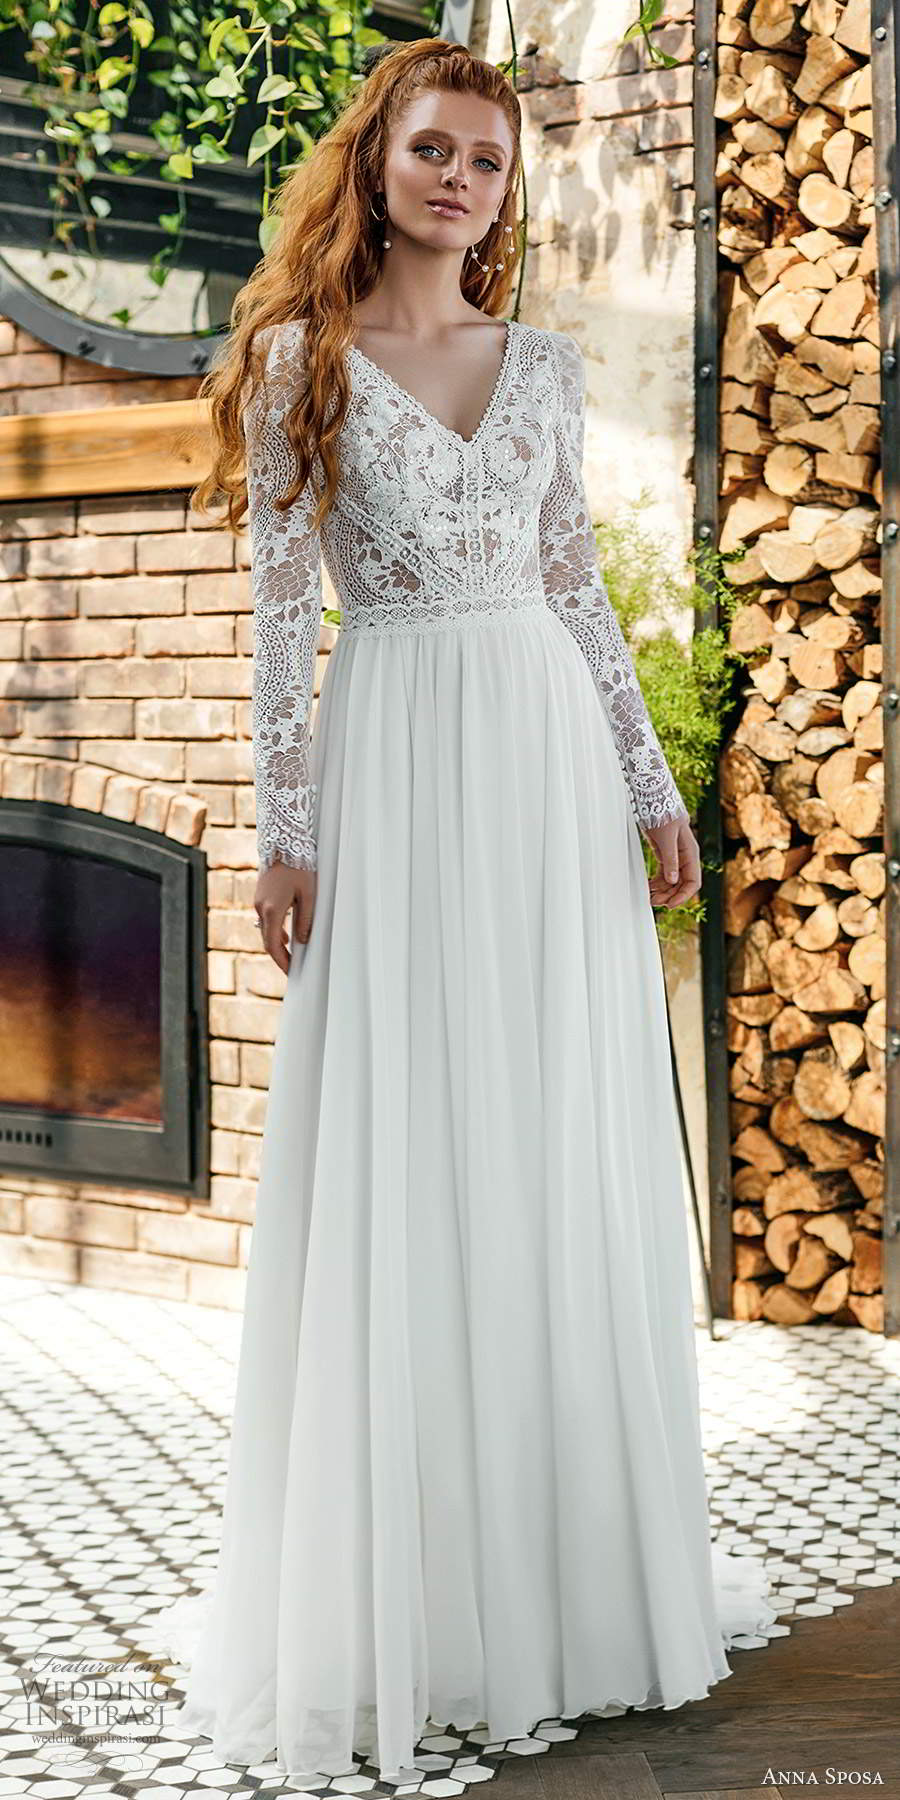 anna sposa 2021 boho bridal long sleeves v neckline embellished lace bodice clean skirt a line ball gown wedding dress scoop back chapel train (7) mv